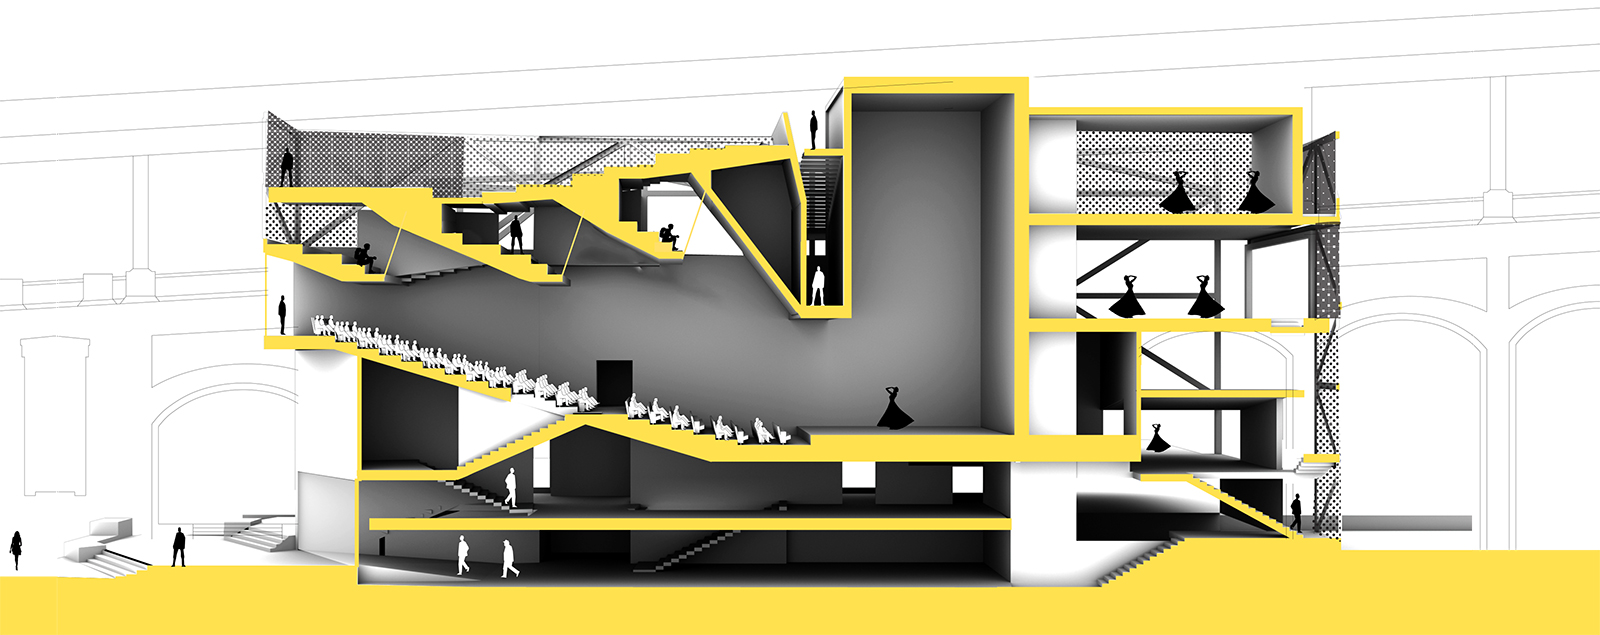 Long section perspective of the main DM performance hall with studio spaces, lower facilities and upper stage